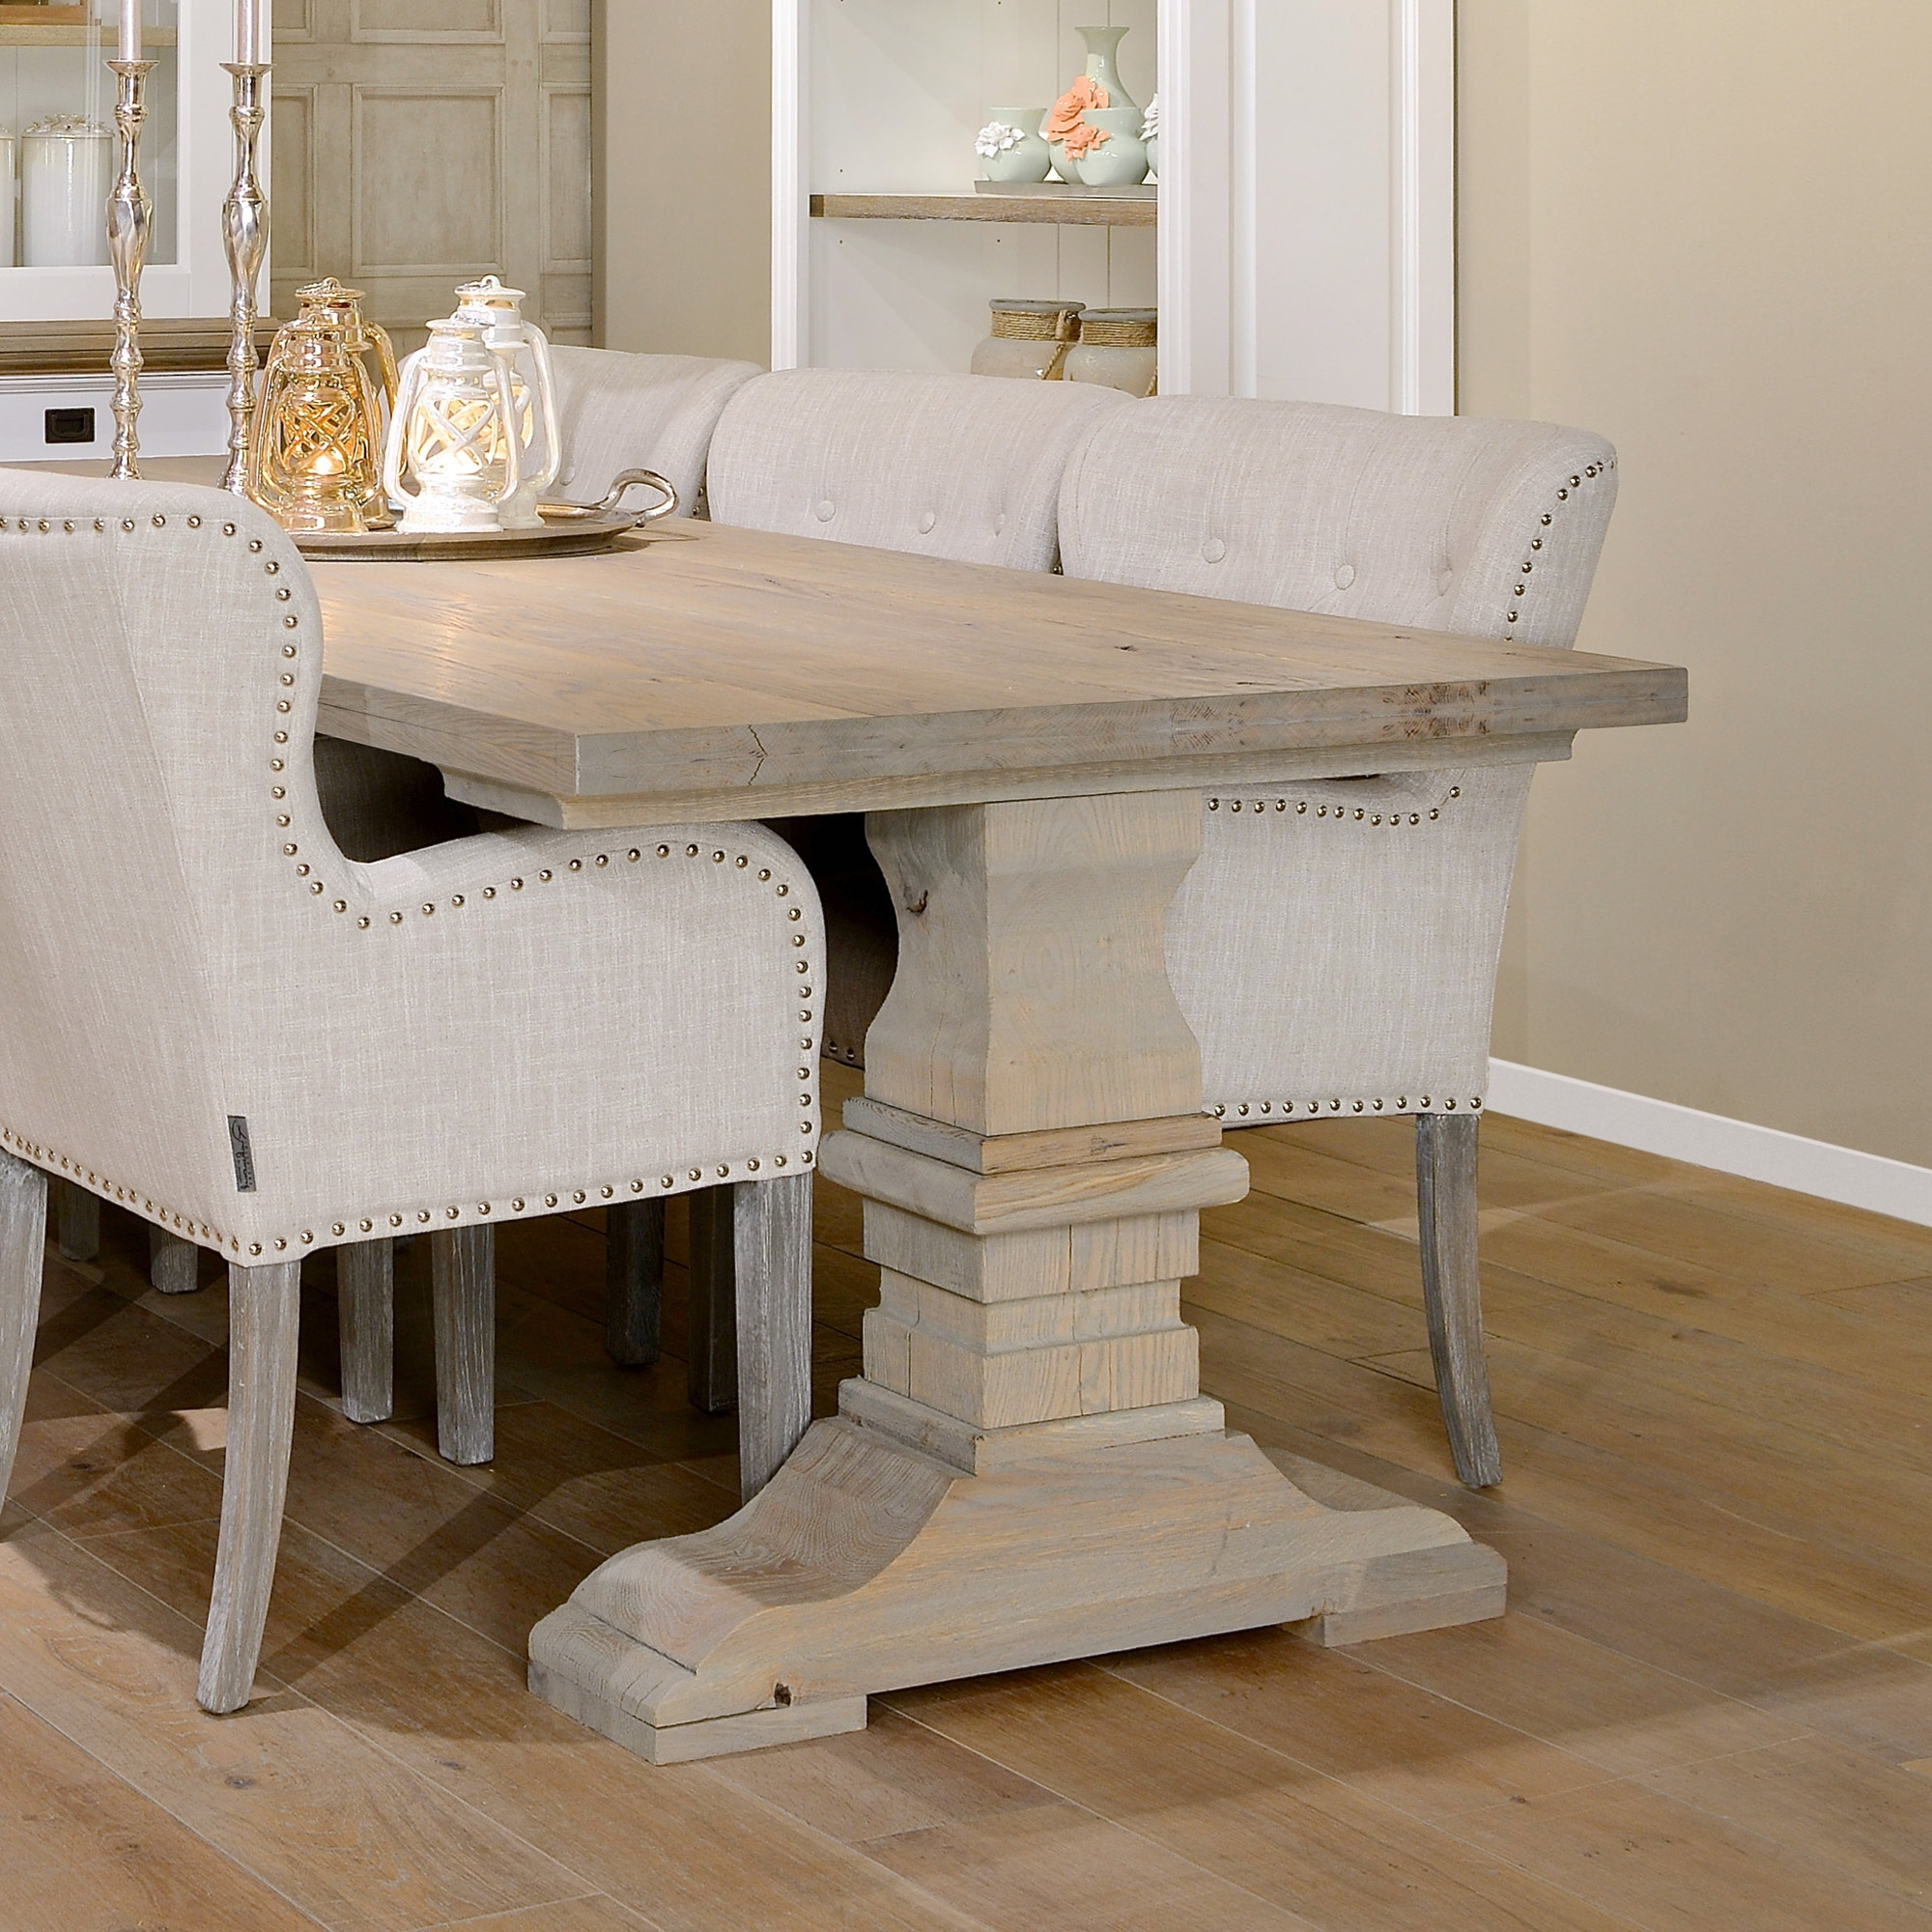 Most Popular Oak Dining Tables Intended For Castle Oak Dining Table (View 2 of 25)